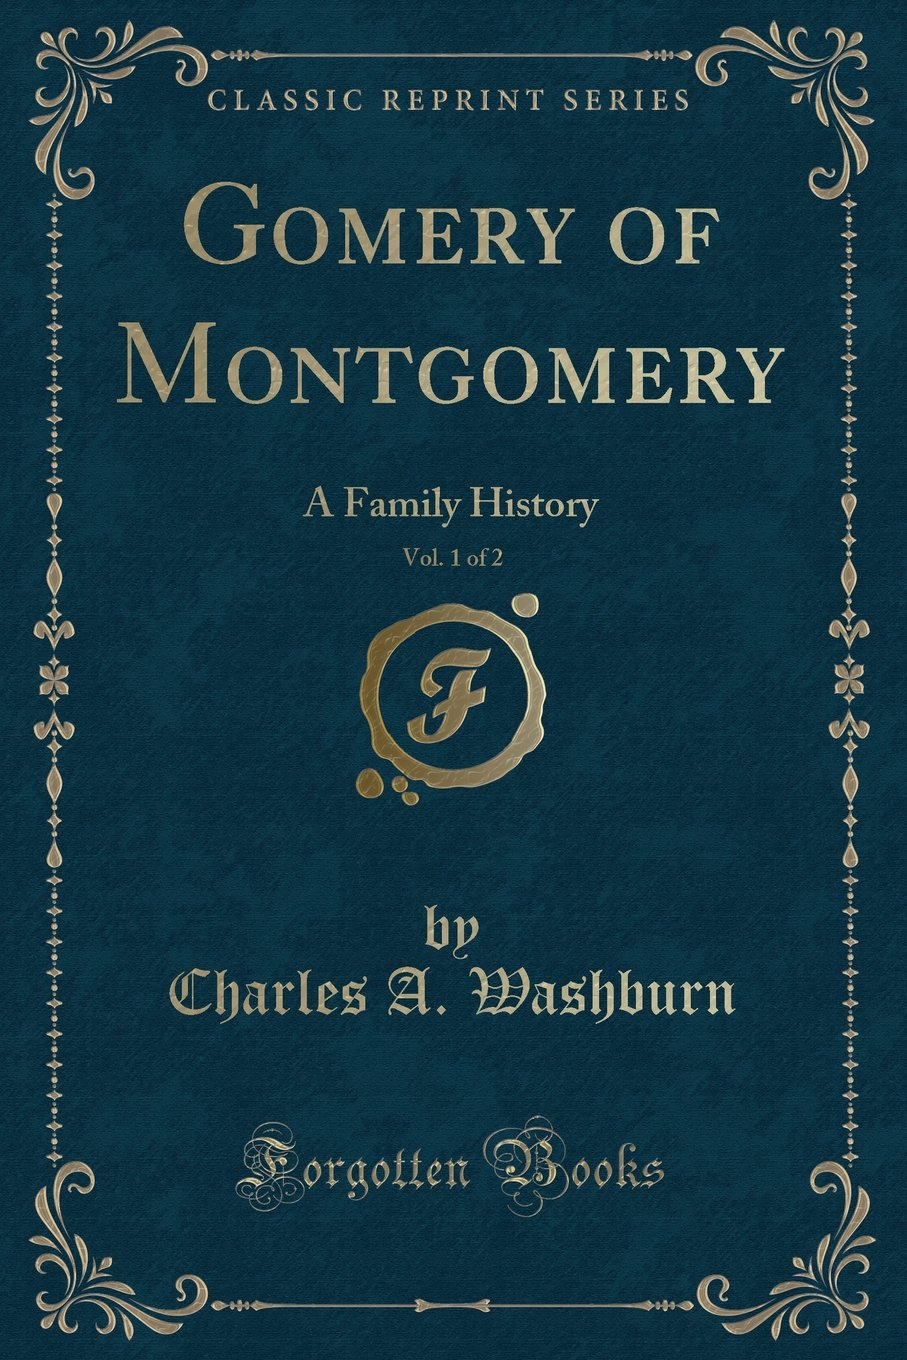 Gomery of Montgomery, Vol. 1 of 2: A Family History (Classic Reprint) PDF